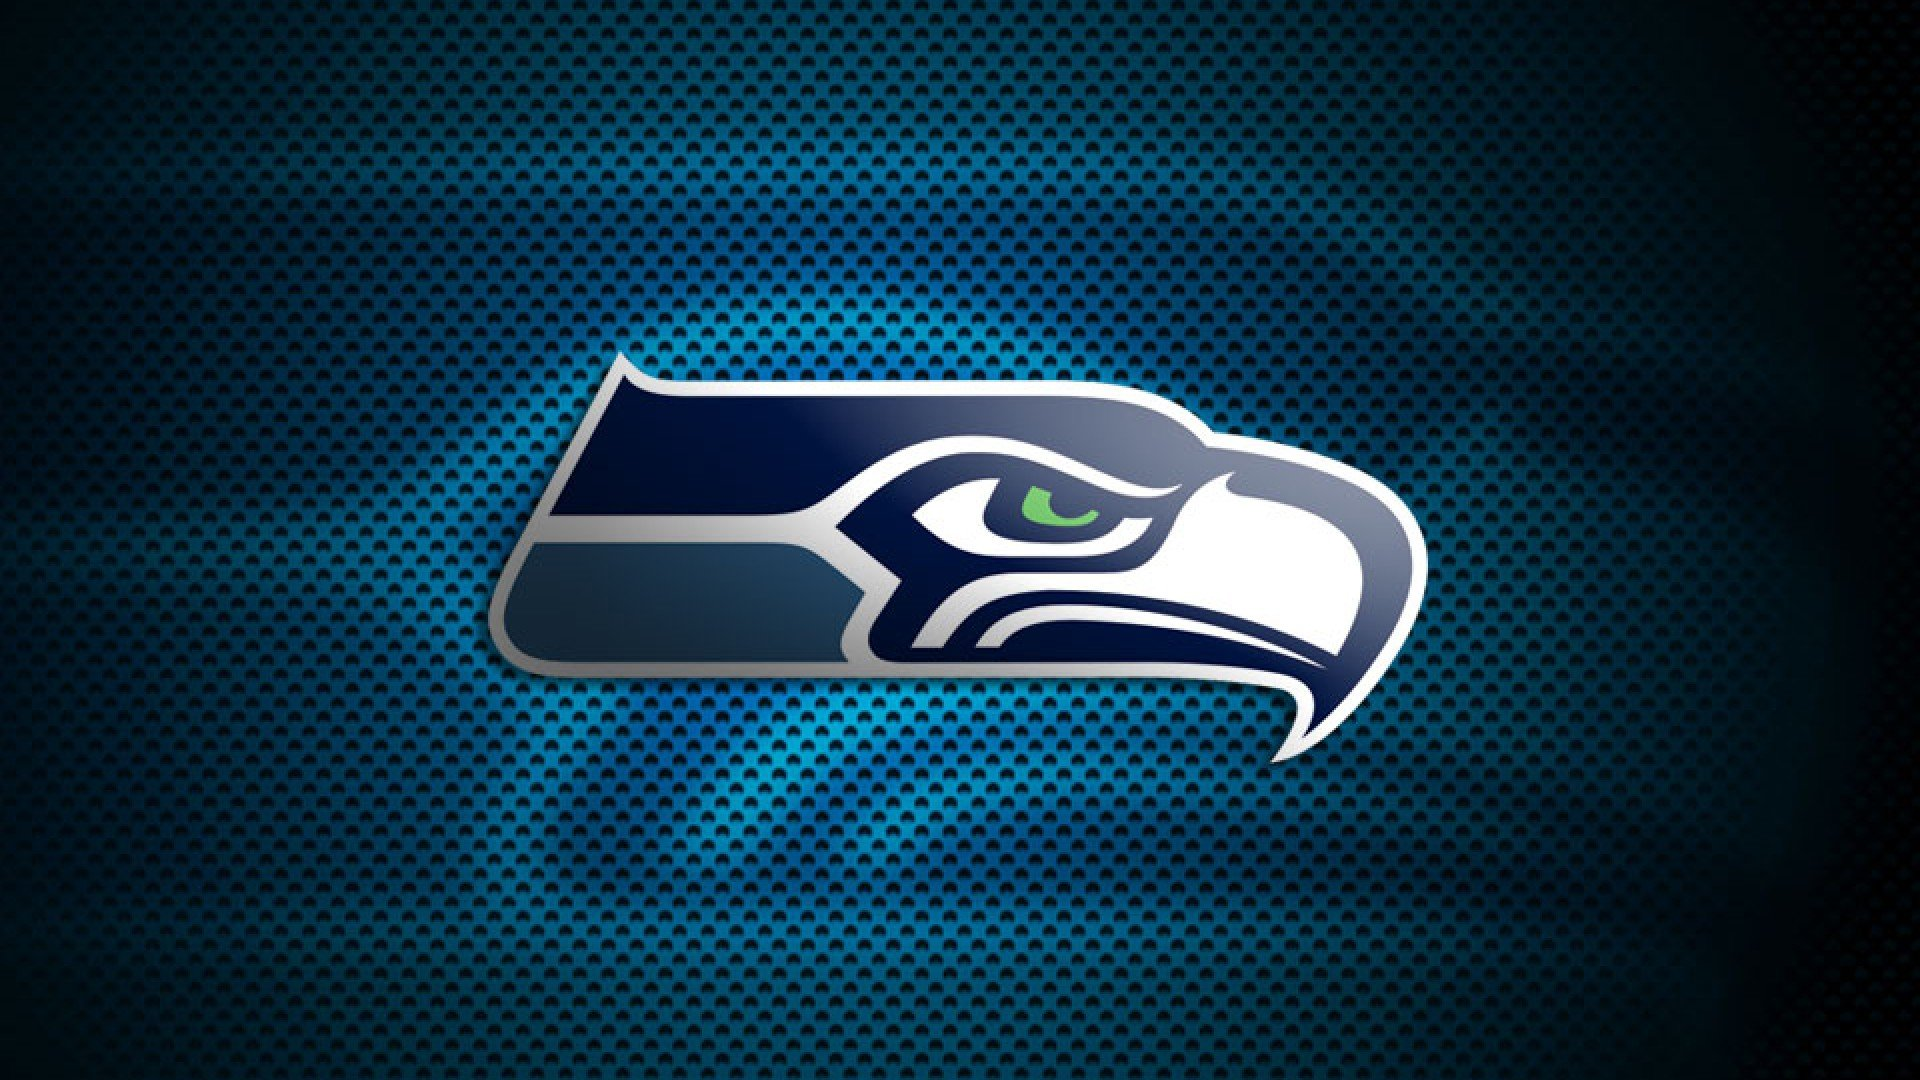 seahawks high resolution wallpaper - photo #9